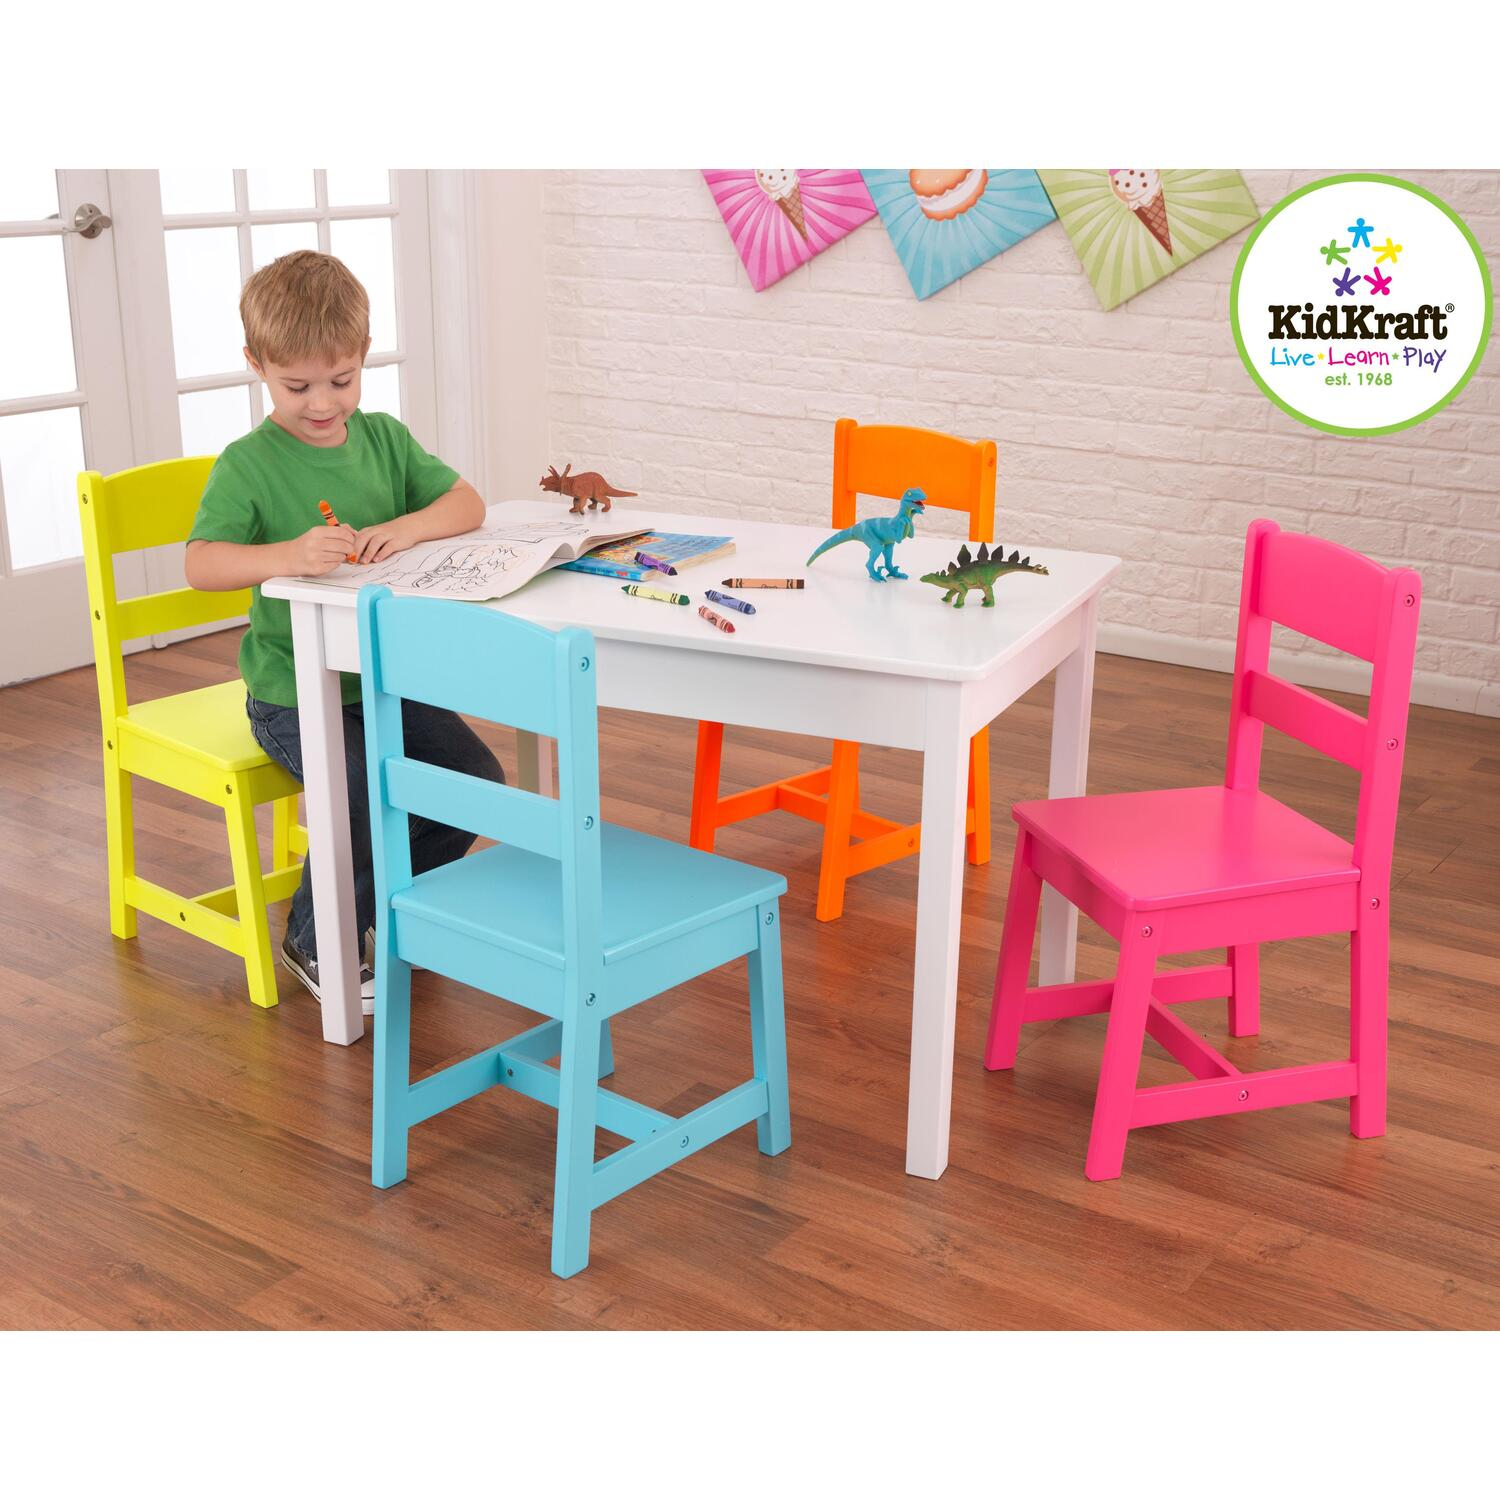 Kidkraft highlighter table 4 chair set by oj commerce for Table and chair set